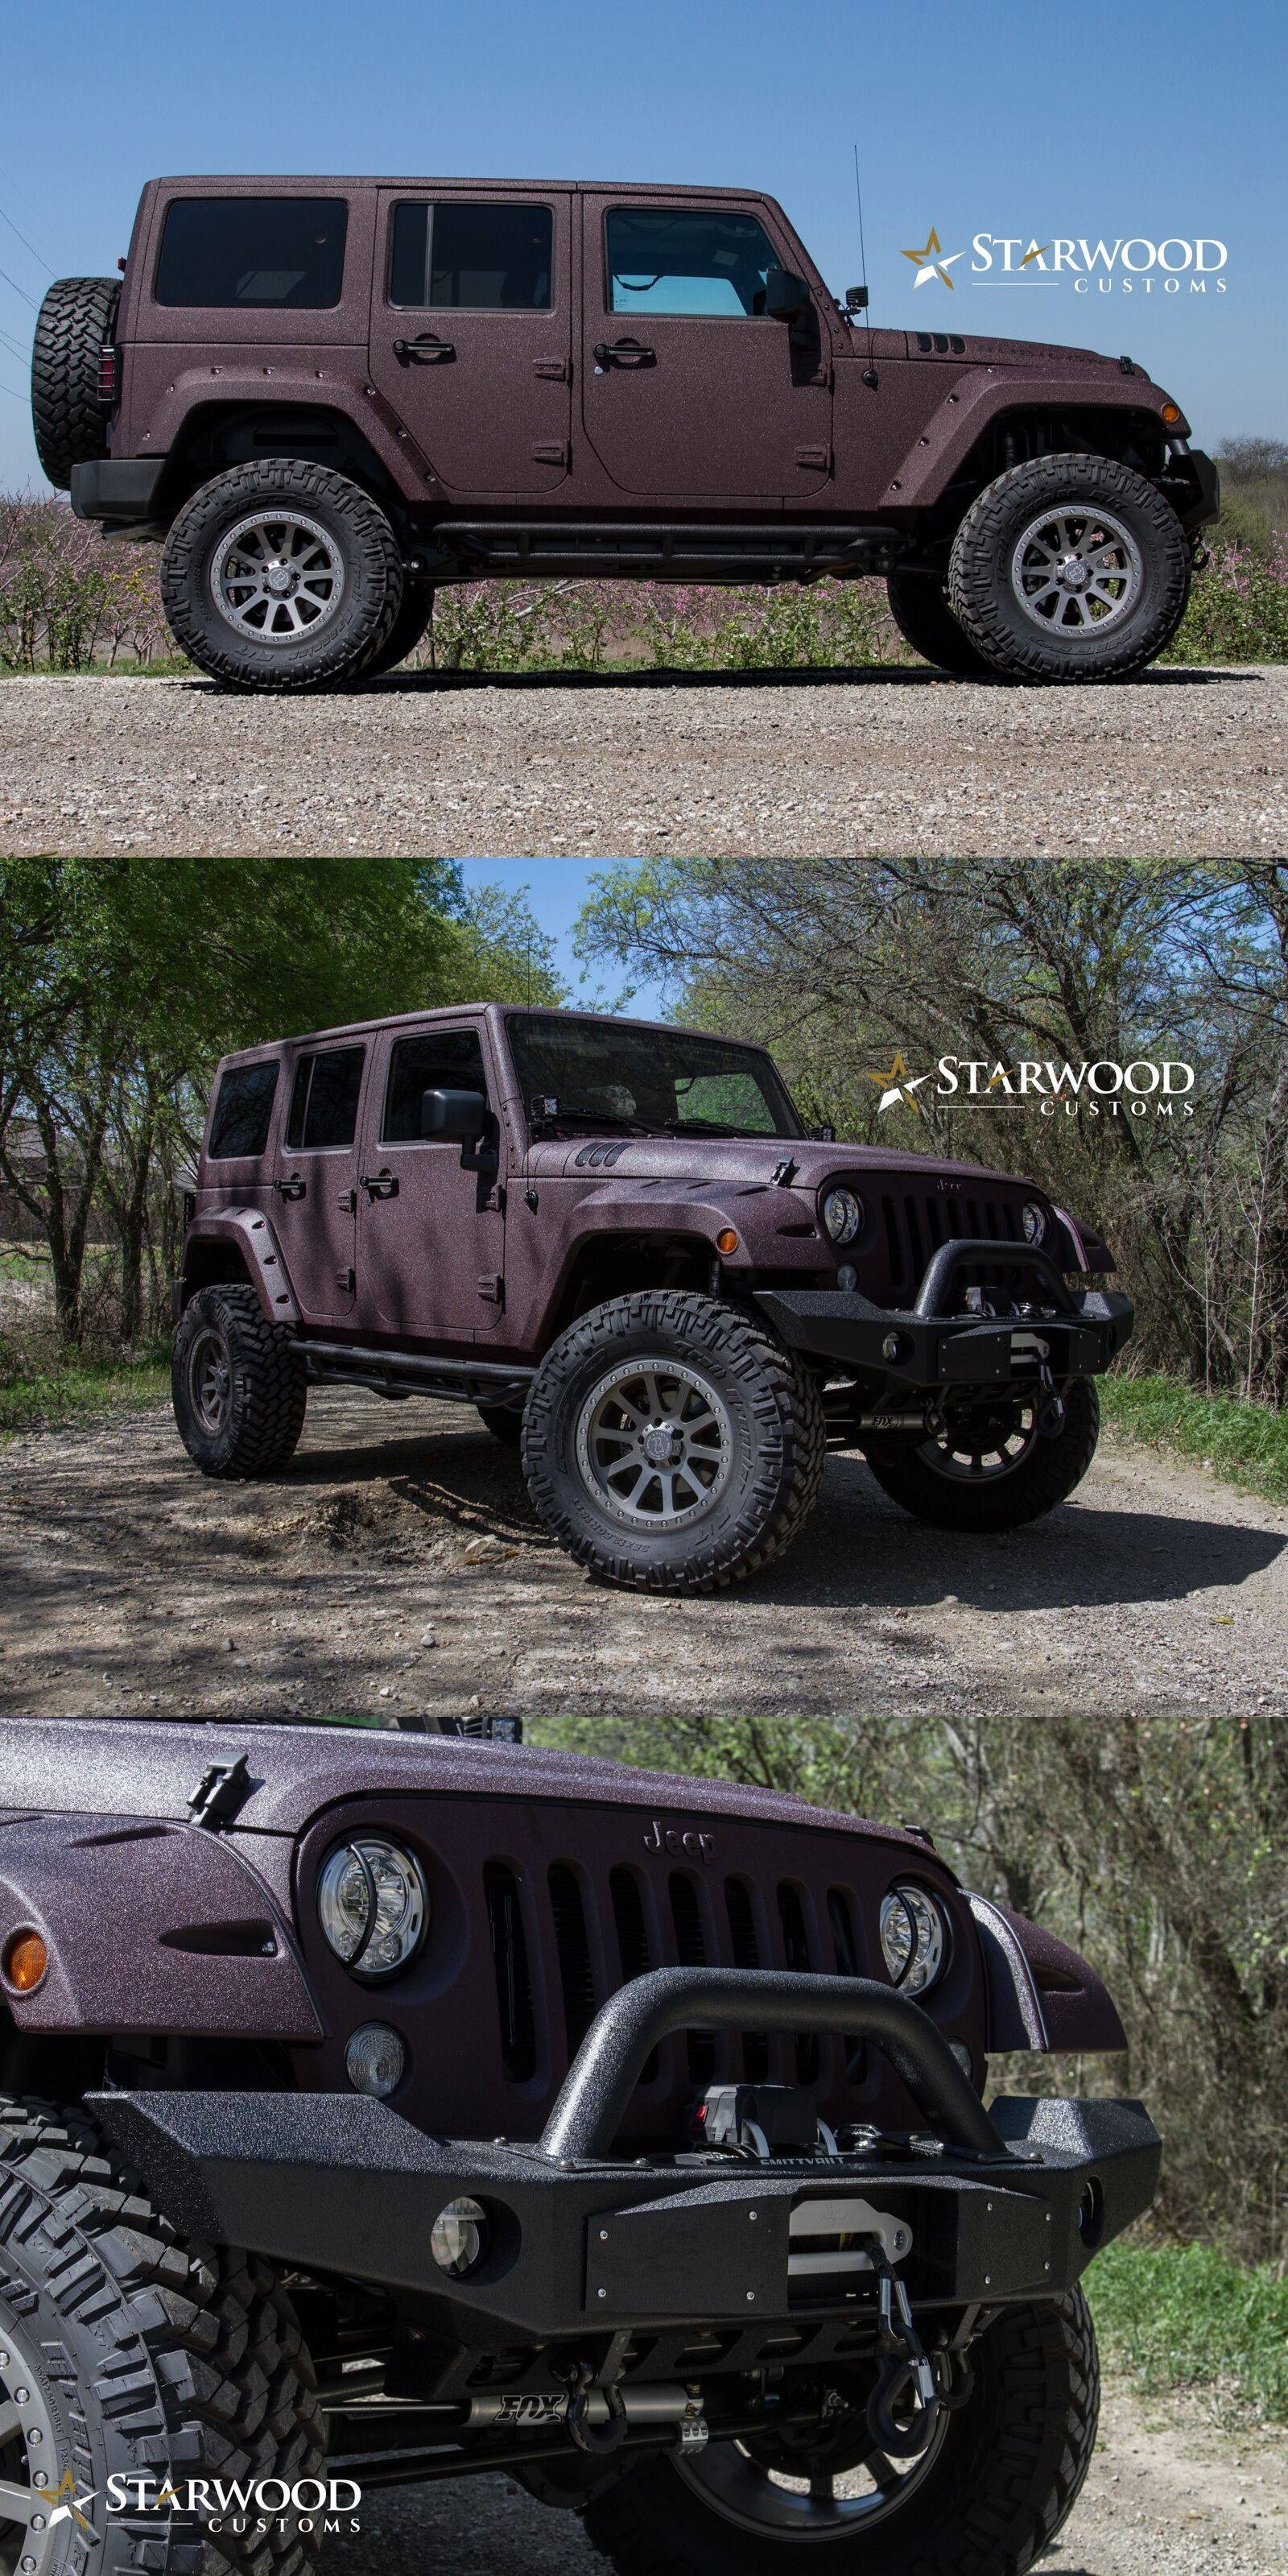 Starwoodmotors Jeepwrangler Customjeep Oiiiiiiio Signature Starwood Vehicles Jeepmods Jeeplife Offroad Proj Jeep Cars Dream Cars Jeep Jeep